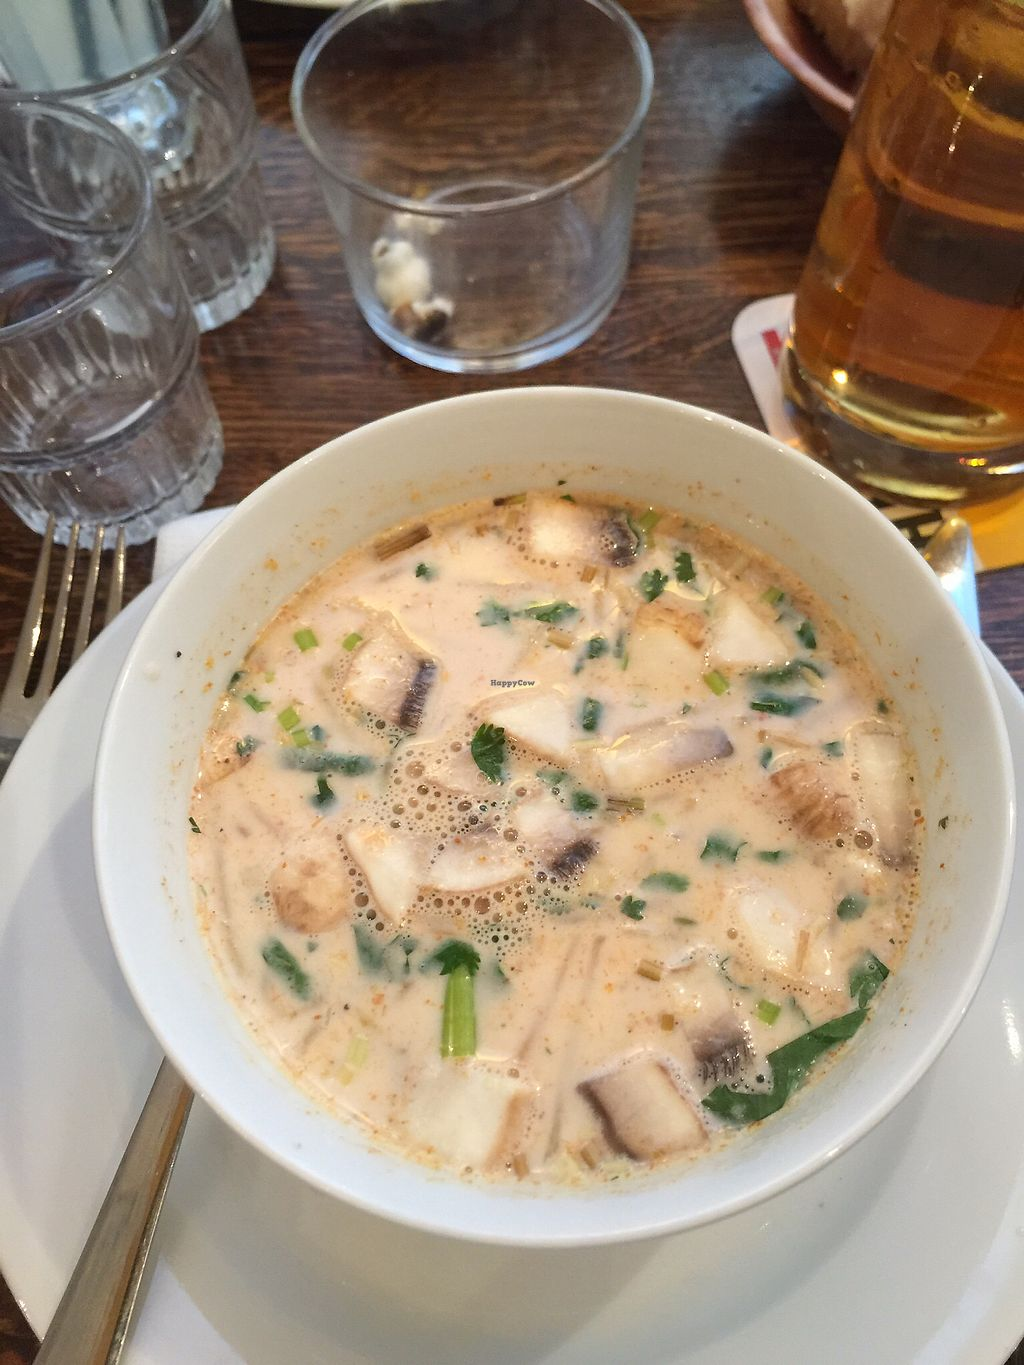 """Photo of CLOSED: Brasserie Lola  by <a href=""""/members/profile/WeDesign"""">WeDesign</a> <br/>soupe <br/> July 7, 2017  - <a href='/contact/abuse/image/52172/277581'>Report</a>"""